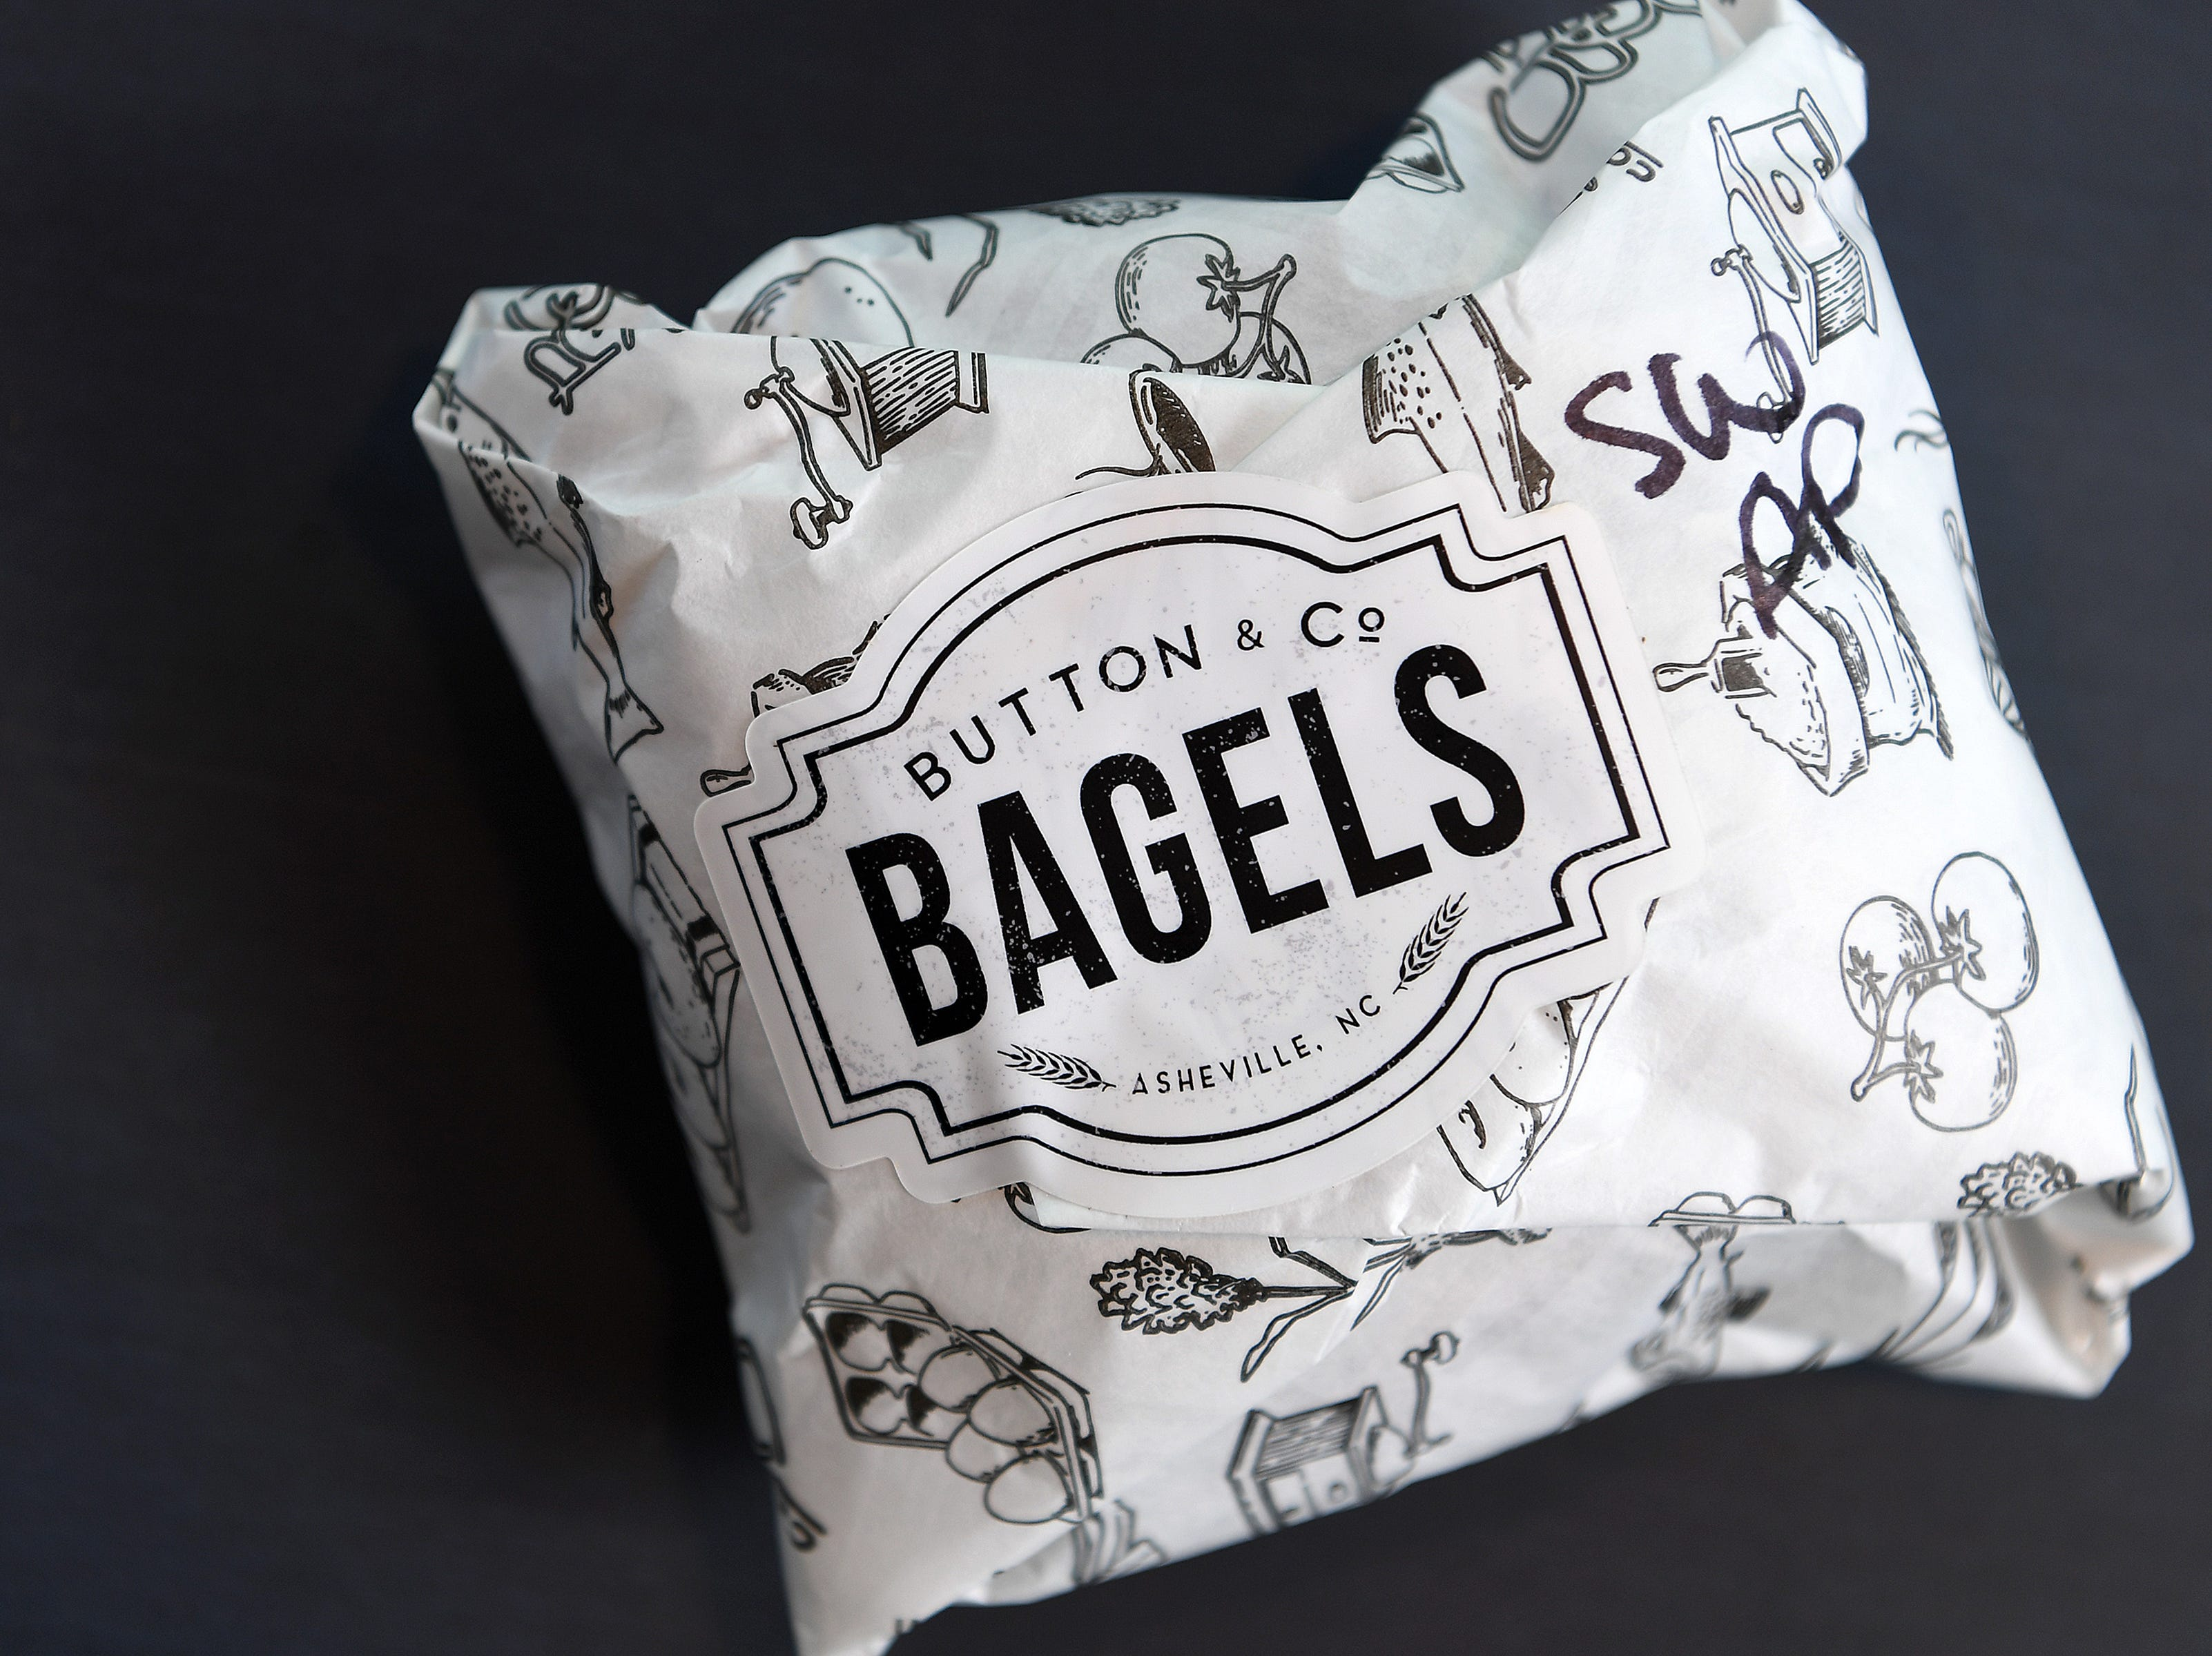 A bagel sandwich is wrapped in special paper with a customized sticker at Button & Co. Bagels on Lexington Avenue during a friends and family preview on Oct. 24, 2018. The restaurant opens to the public on Friday.